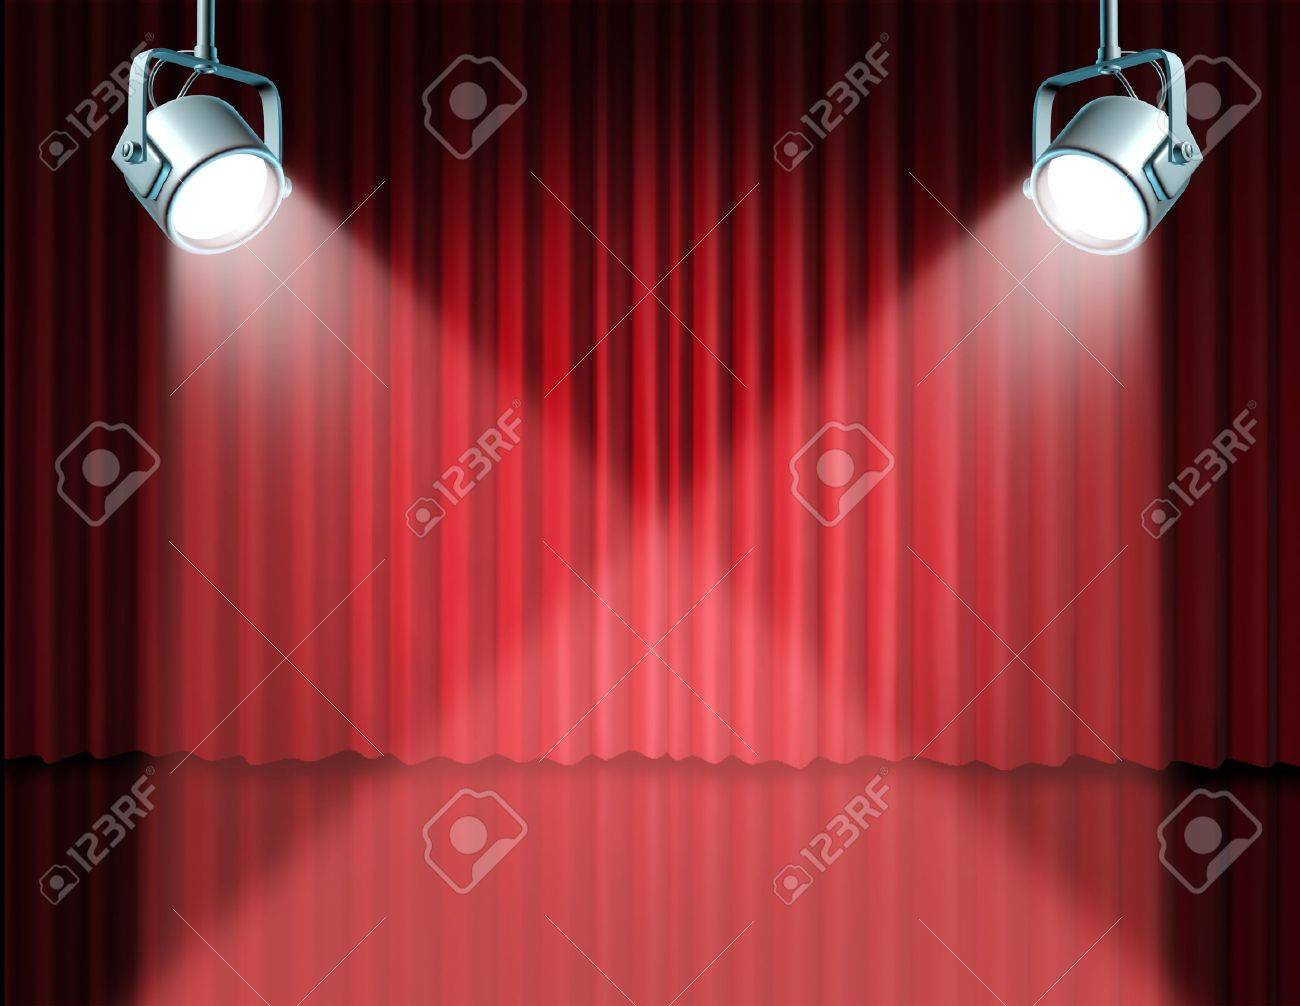 In the spotlight featuring concept for the theater stage with glowing lights on red velvet cinema curtain and drapes representing the entertainment communications concept of an important announcement in a rich cinema and theatrical environment. Stock Photo - 11119737